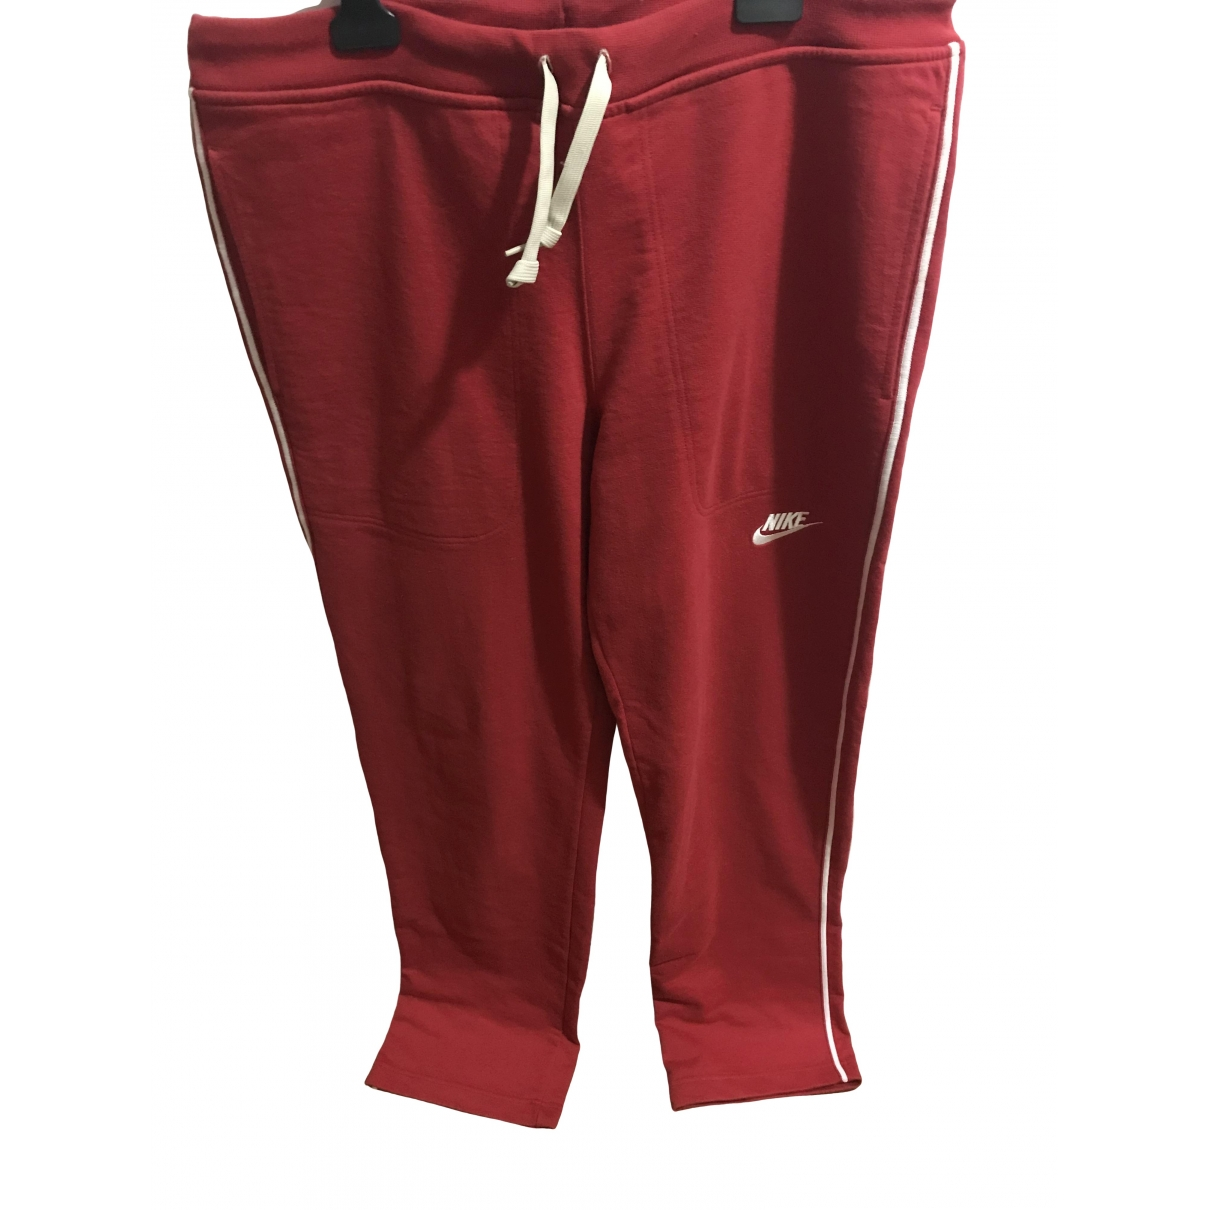 Nike \N Red Cotton Trousers for Men L International